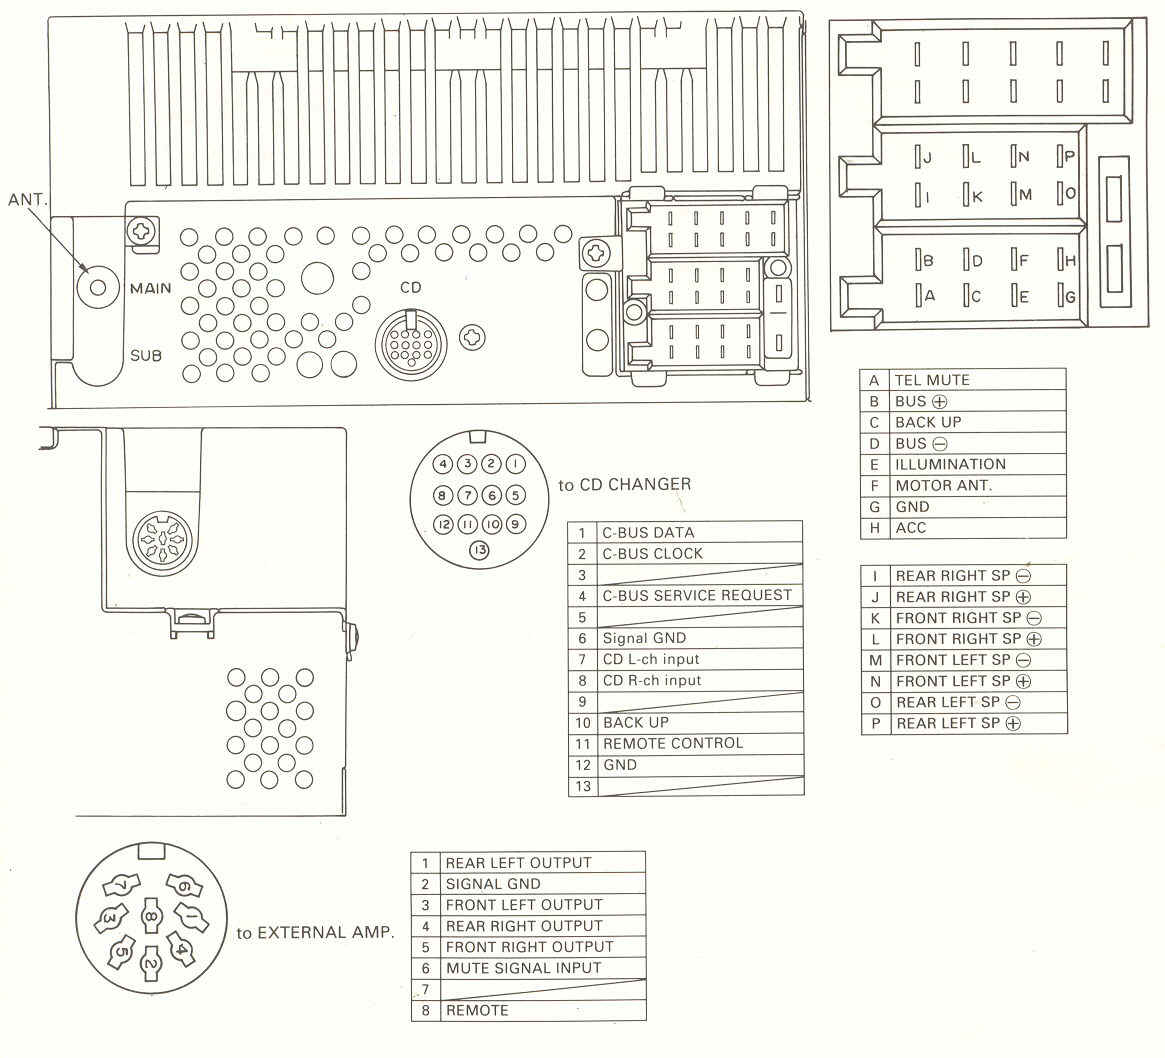 saab speaker wiring diagram saab wiring diagrams online saab car radio stereo audio wiring diagram autoradio connector